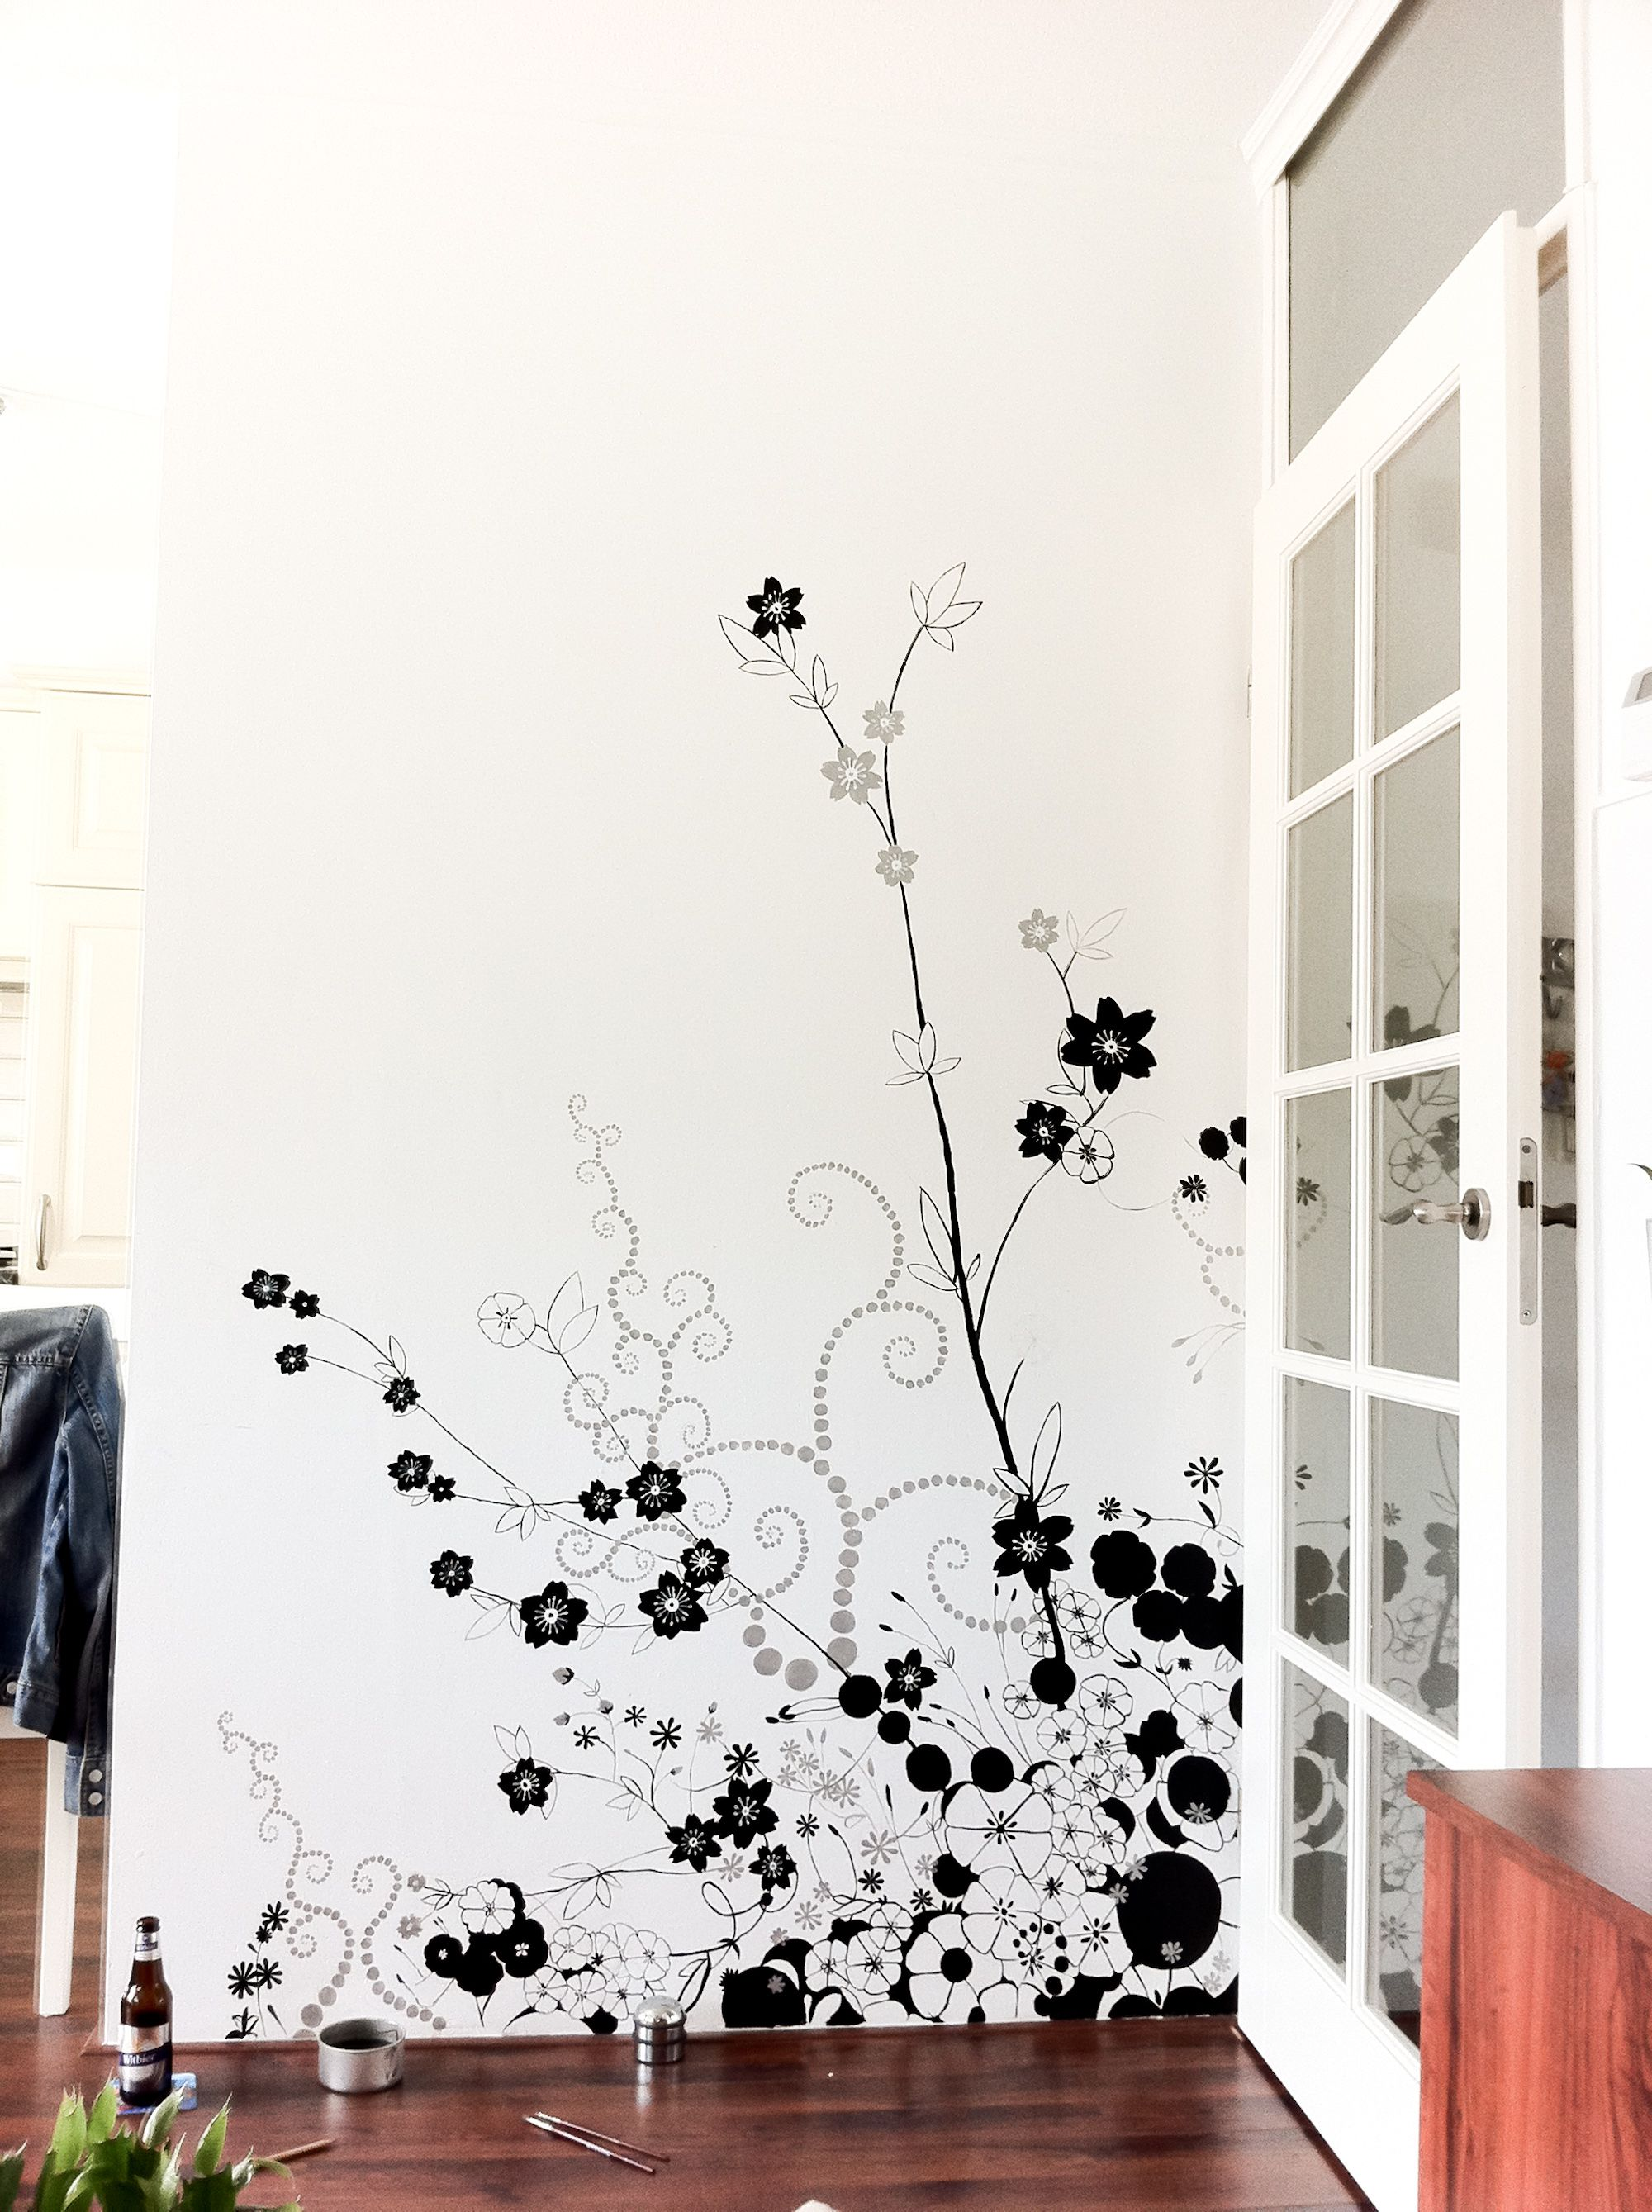 Bedroom paint designs black and white - Incredible High Resolution Of Black Flower Wall Art Design In White Background Painted Wall With Maple Wood Window Frame Also Red Cherry Wood Tile Floor For